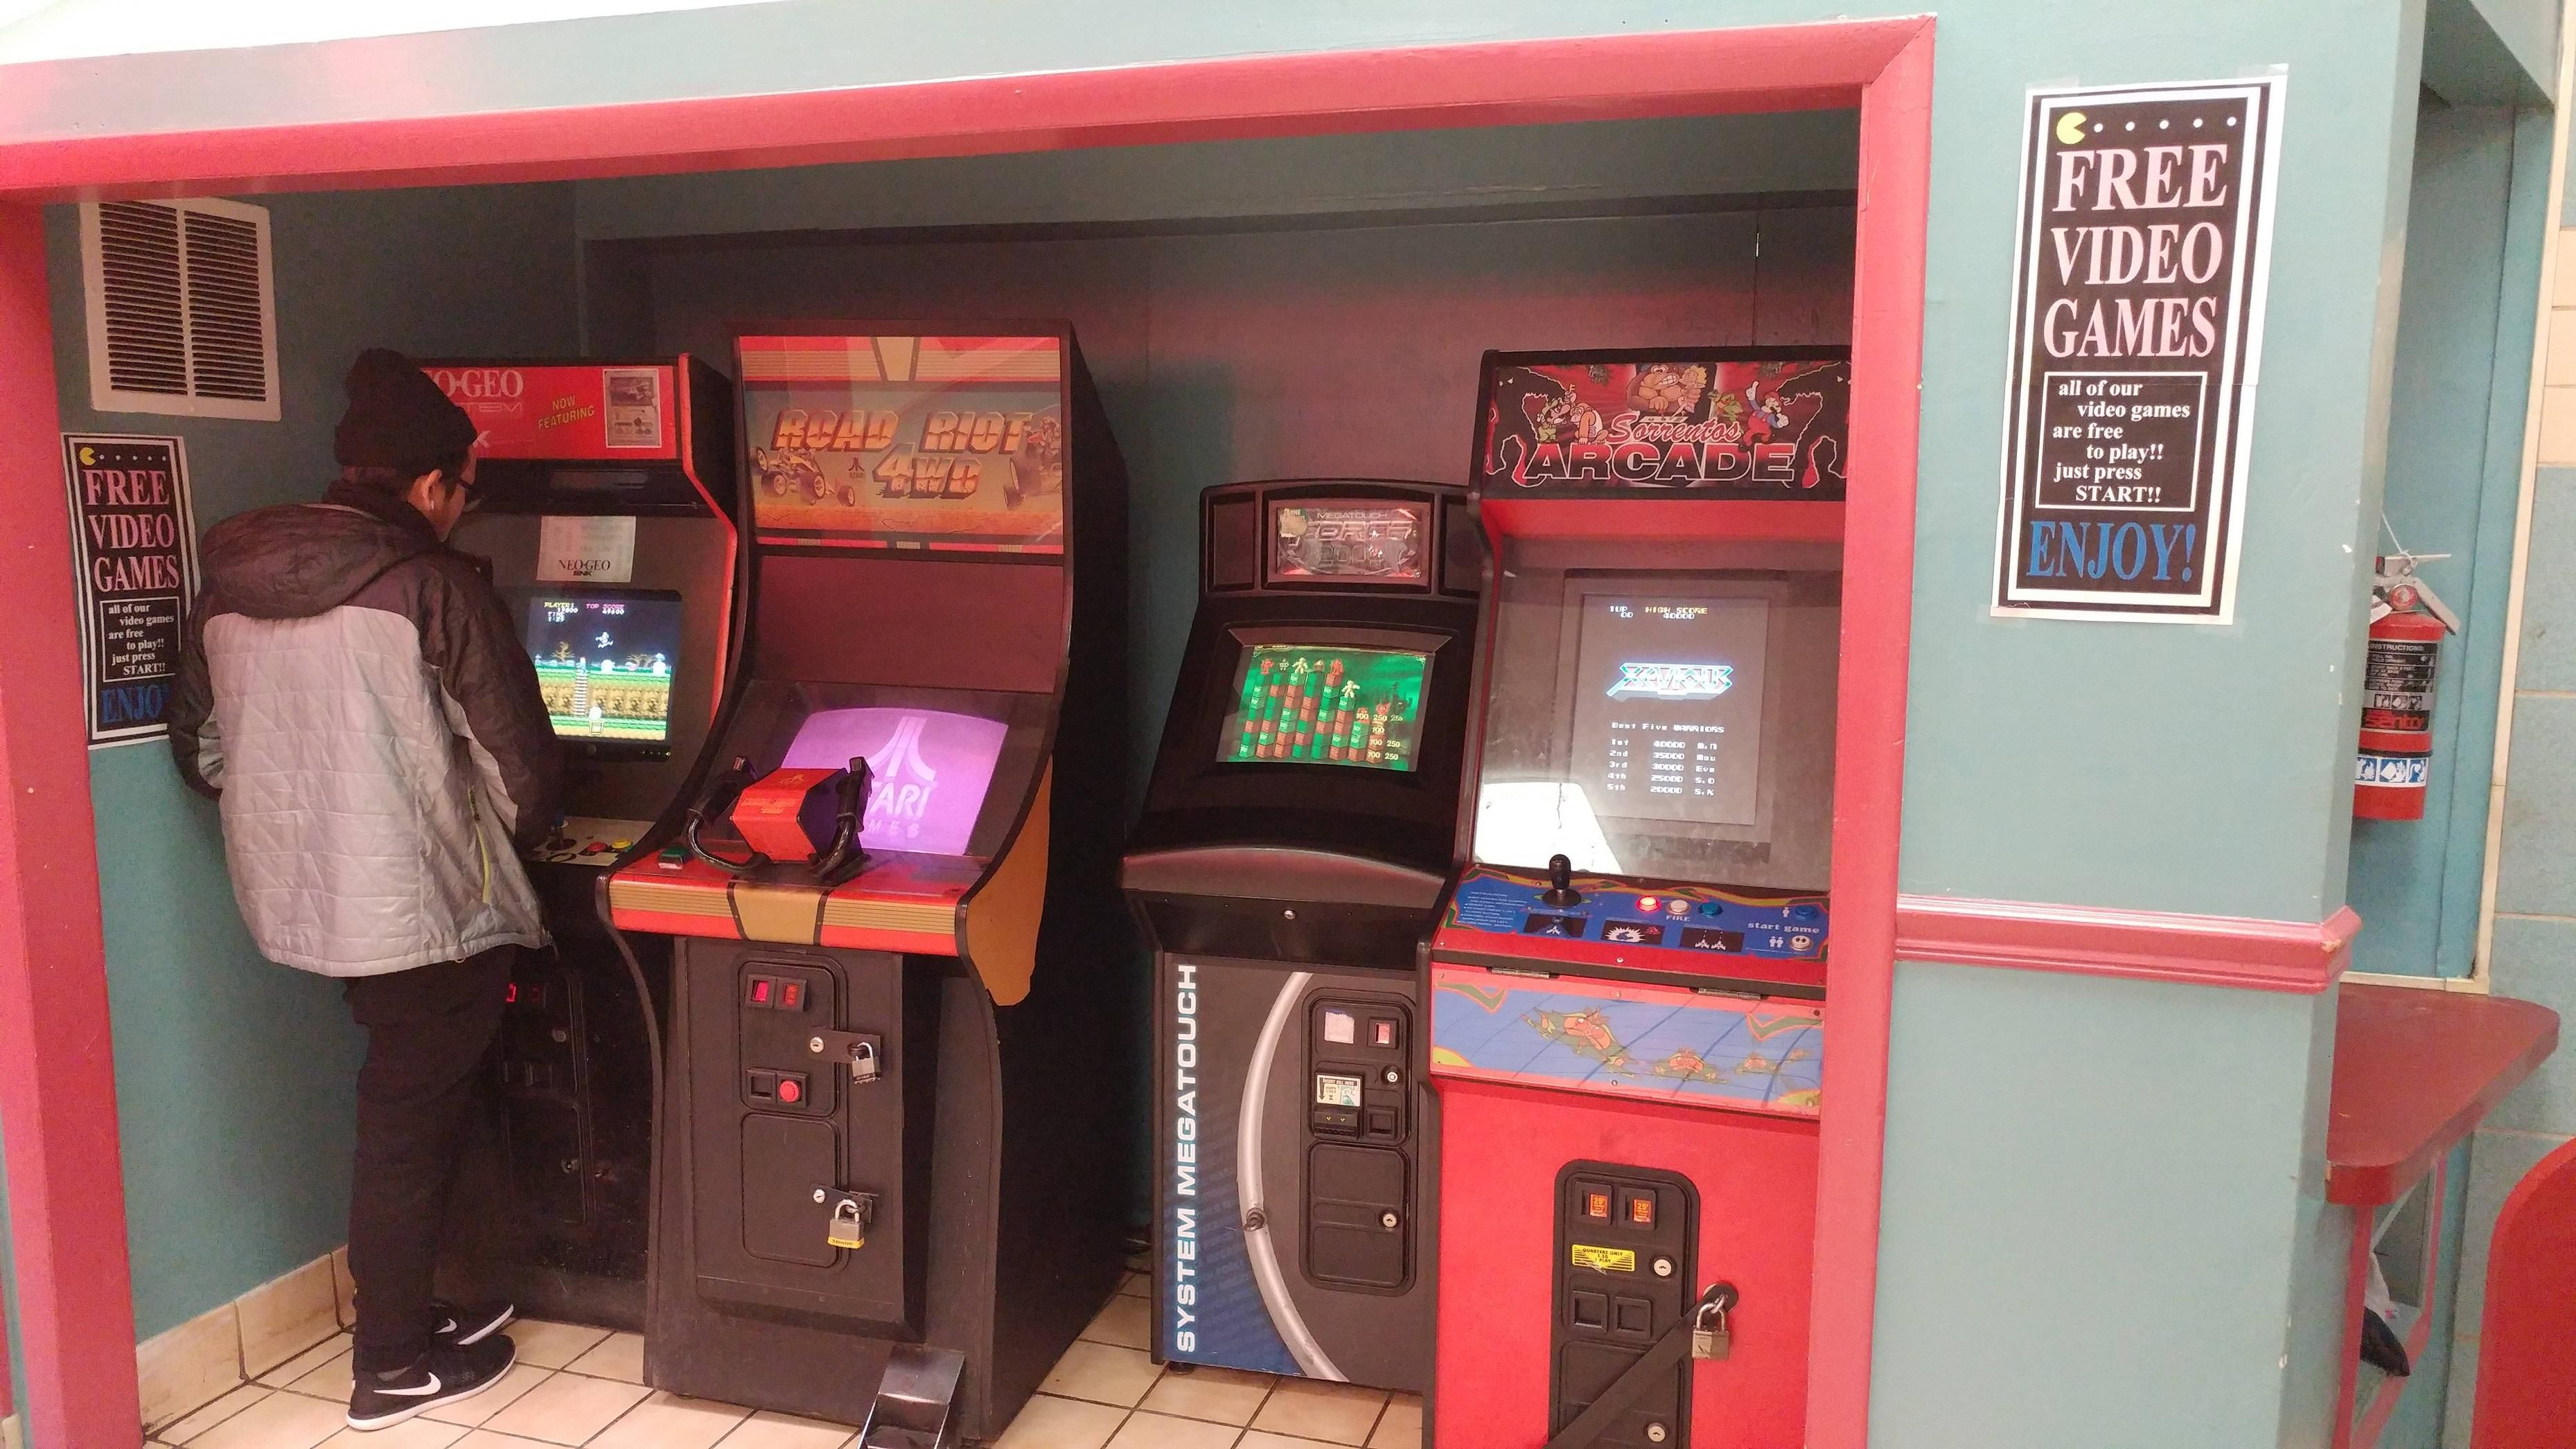 My local pizza place has free arcade games - http://ift.tt/2iQGtAz